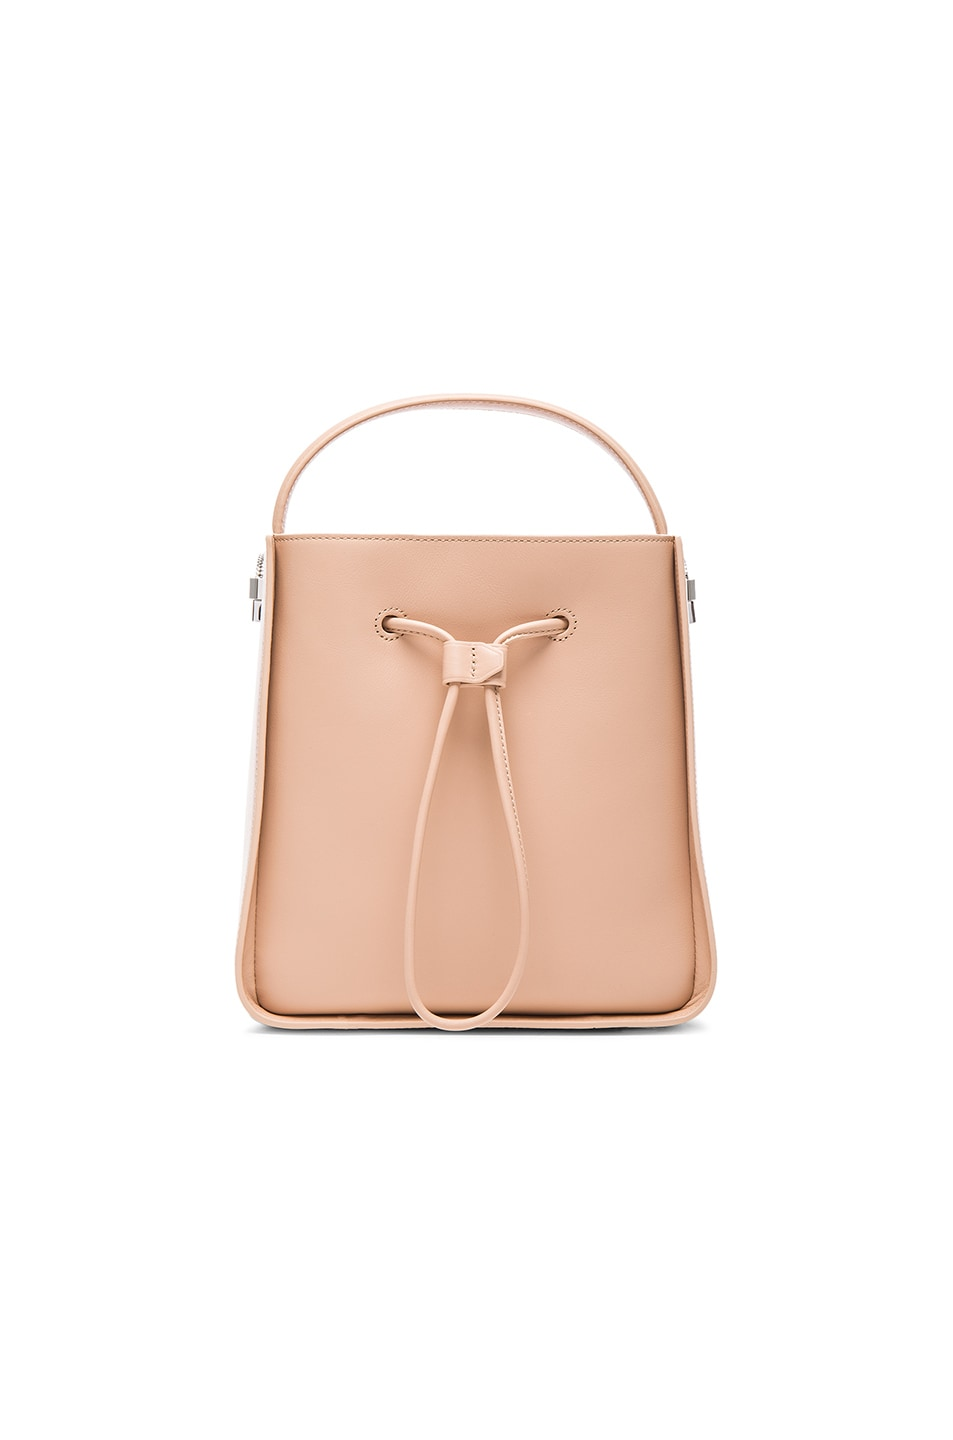 Image 1 of 3.1 phillip lim Small Soleil Bucket Bag in Alabaster